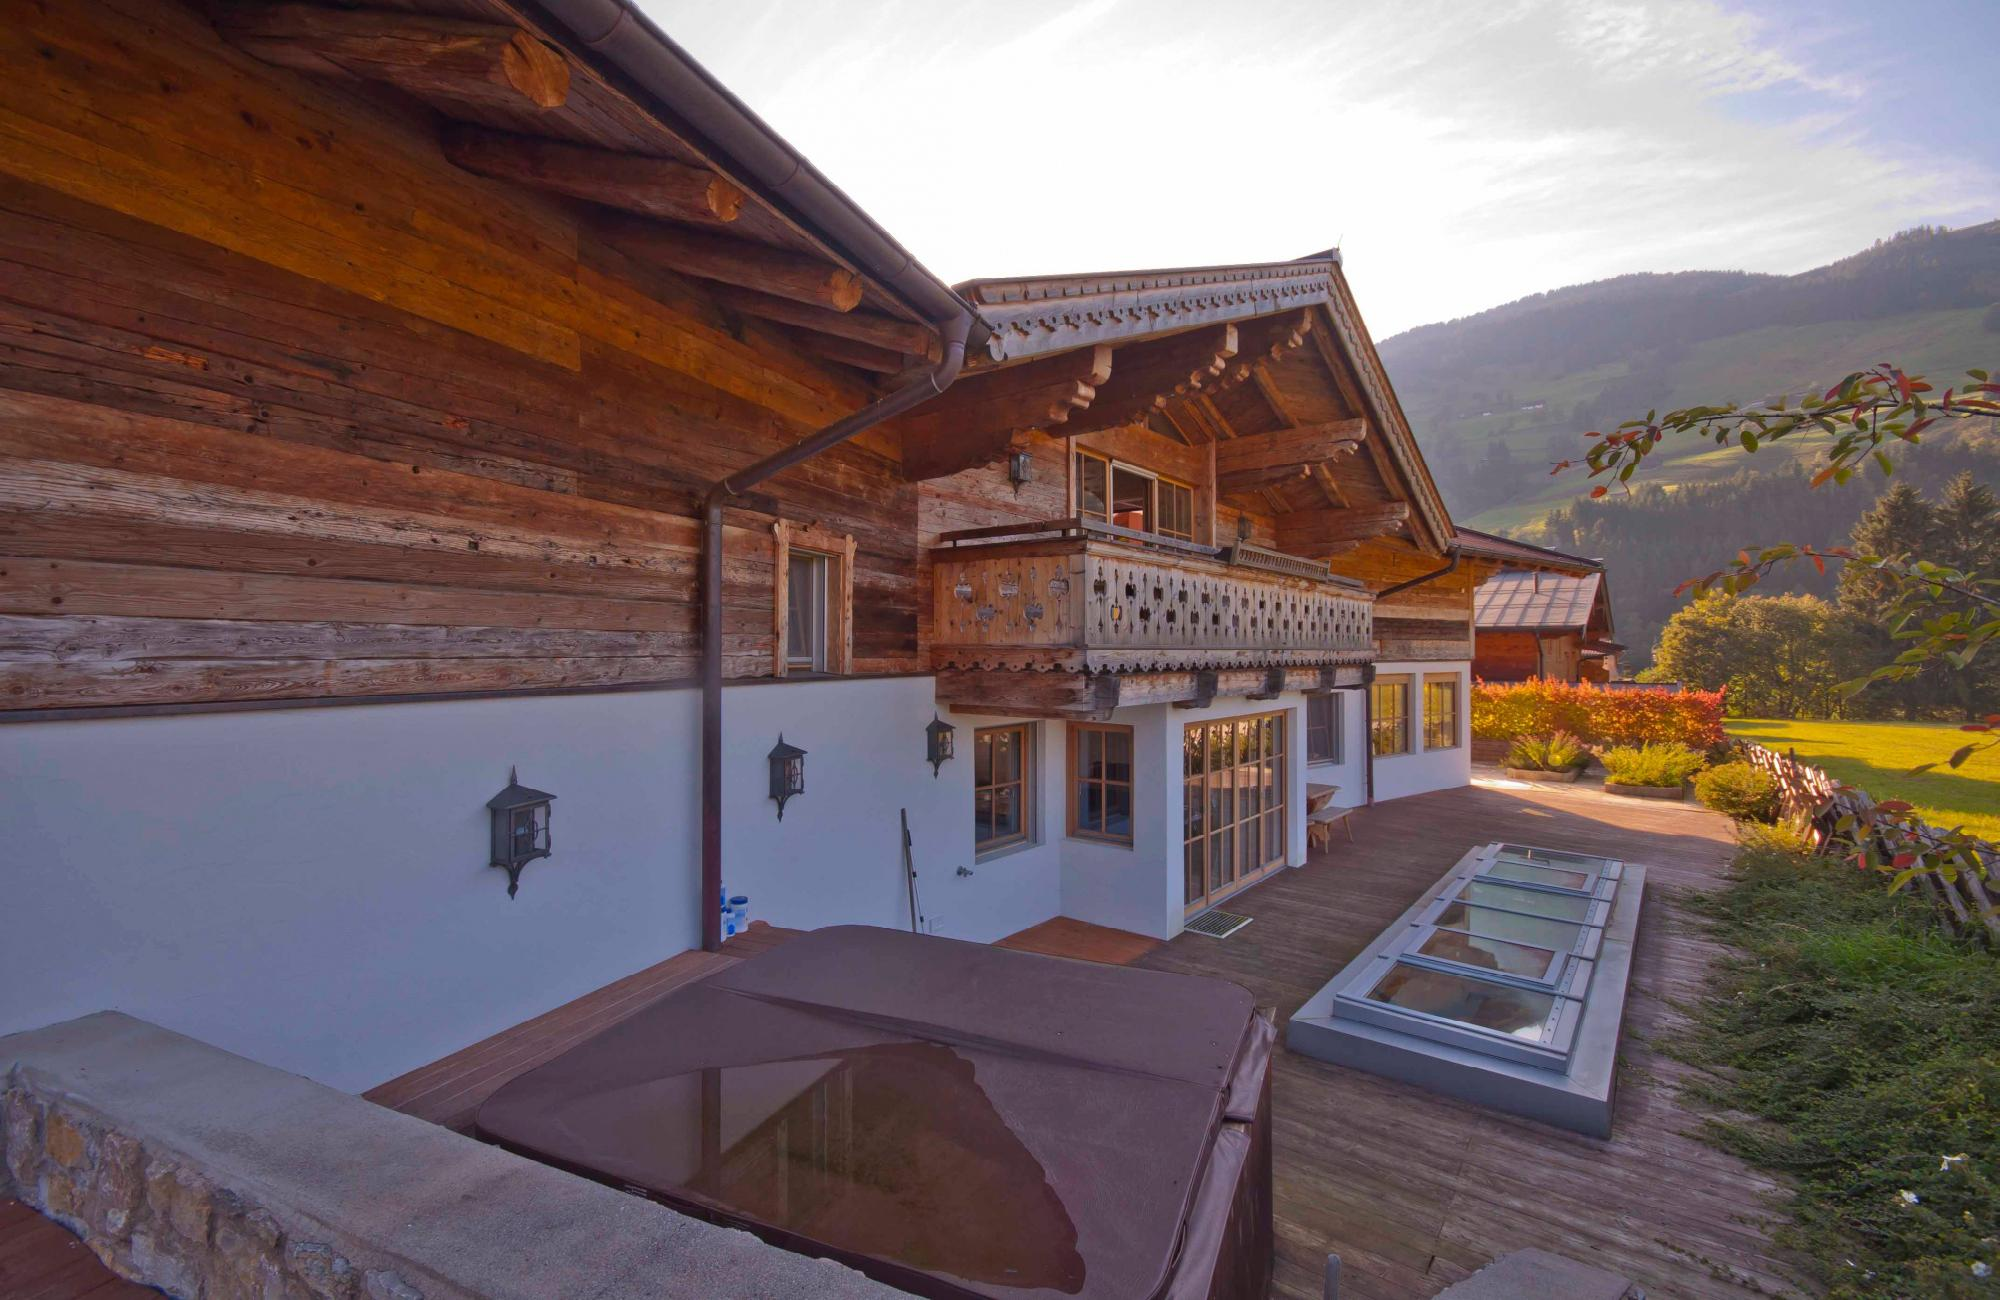 Spacious country villa in Aurach bei Kitzbuhel